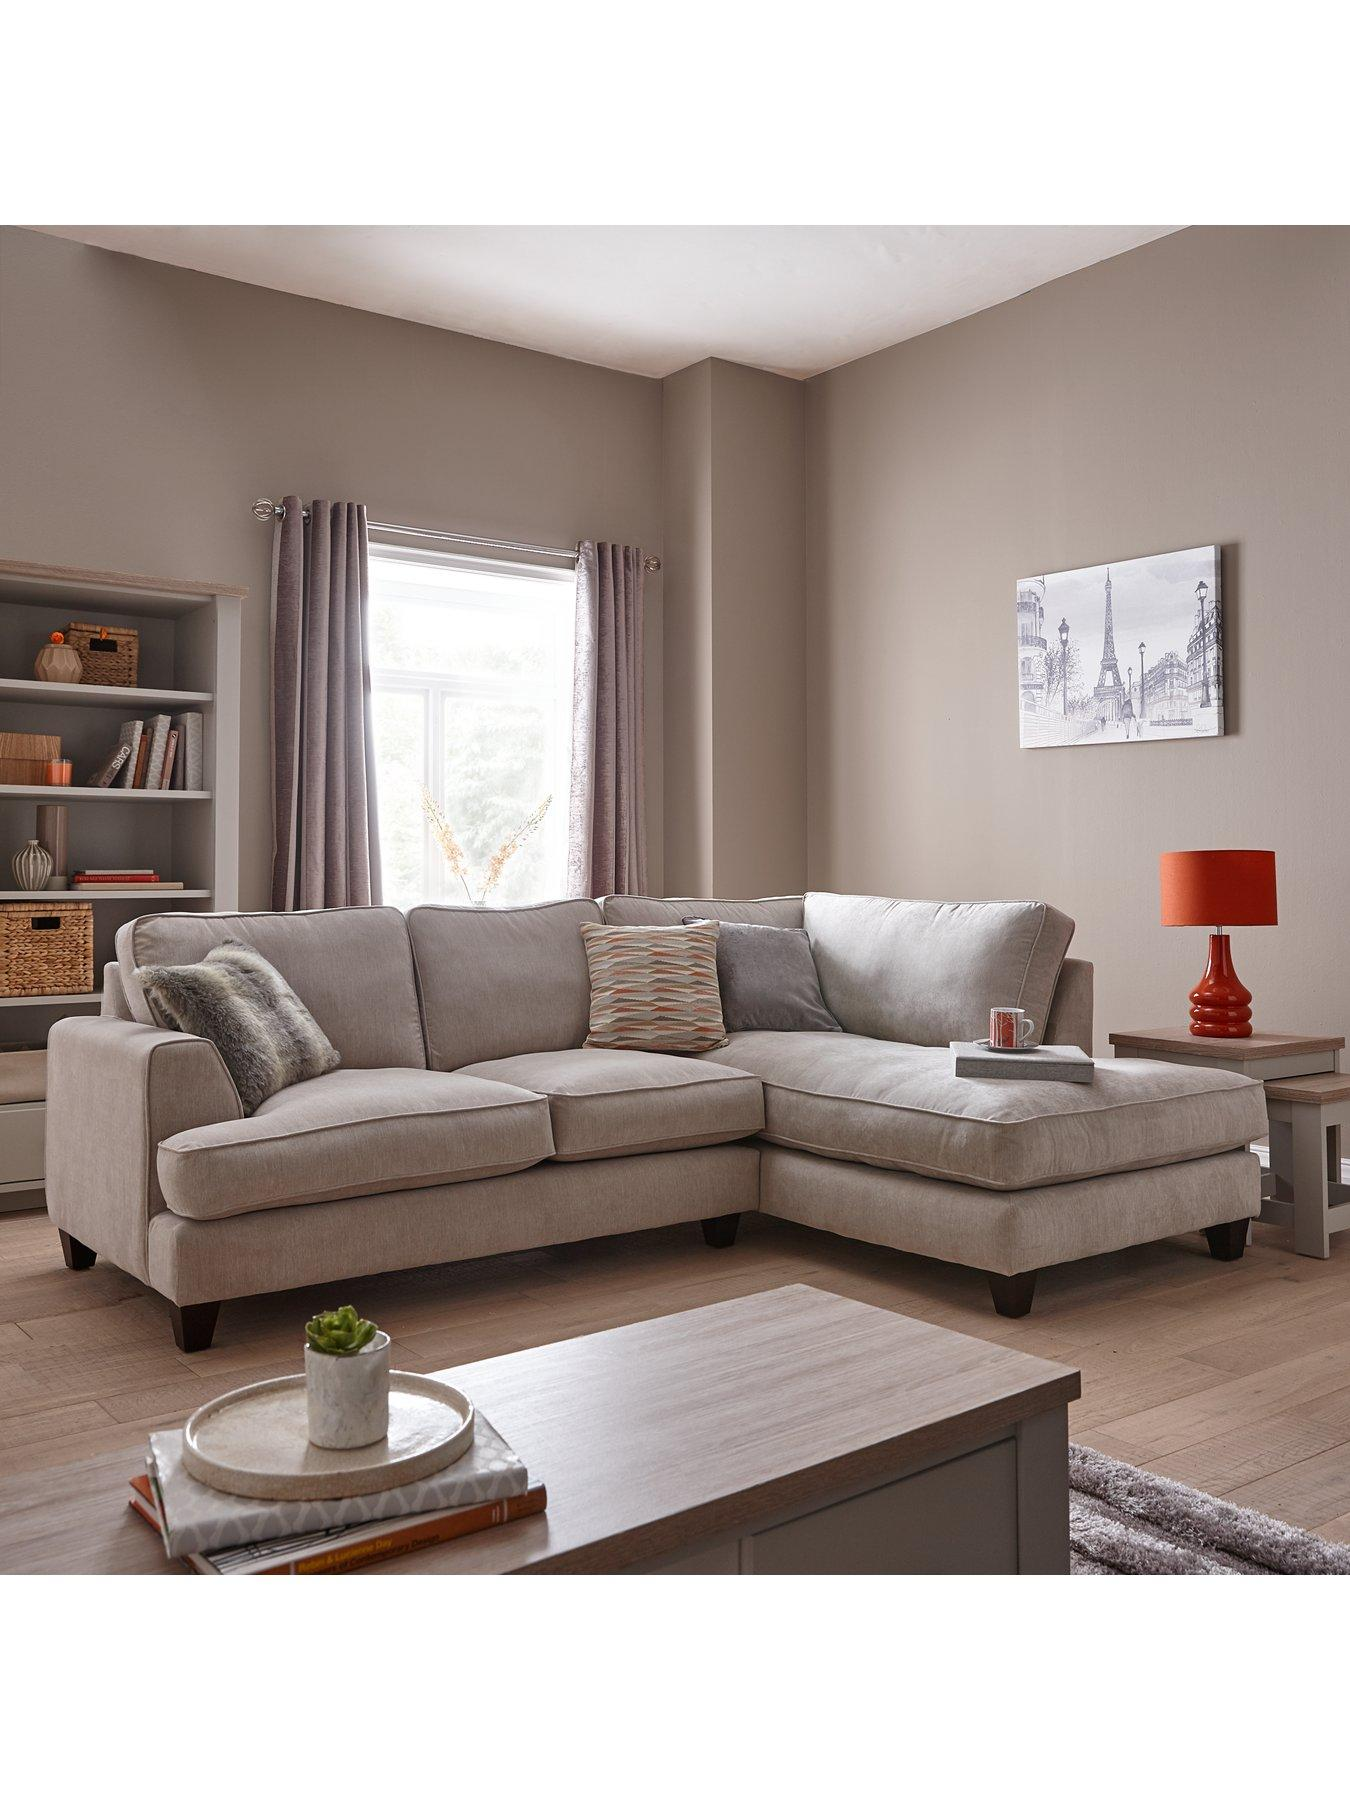 win 2 cavendish sofas with littlewoods